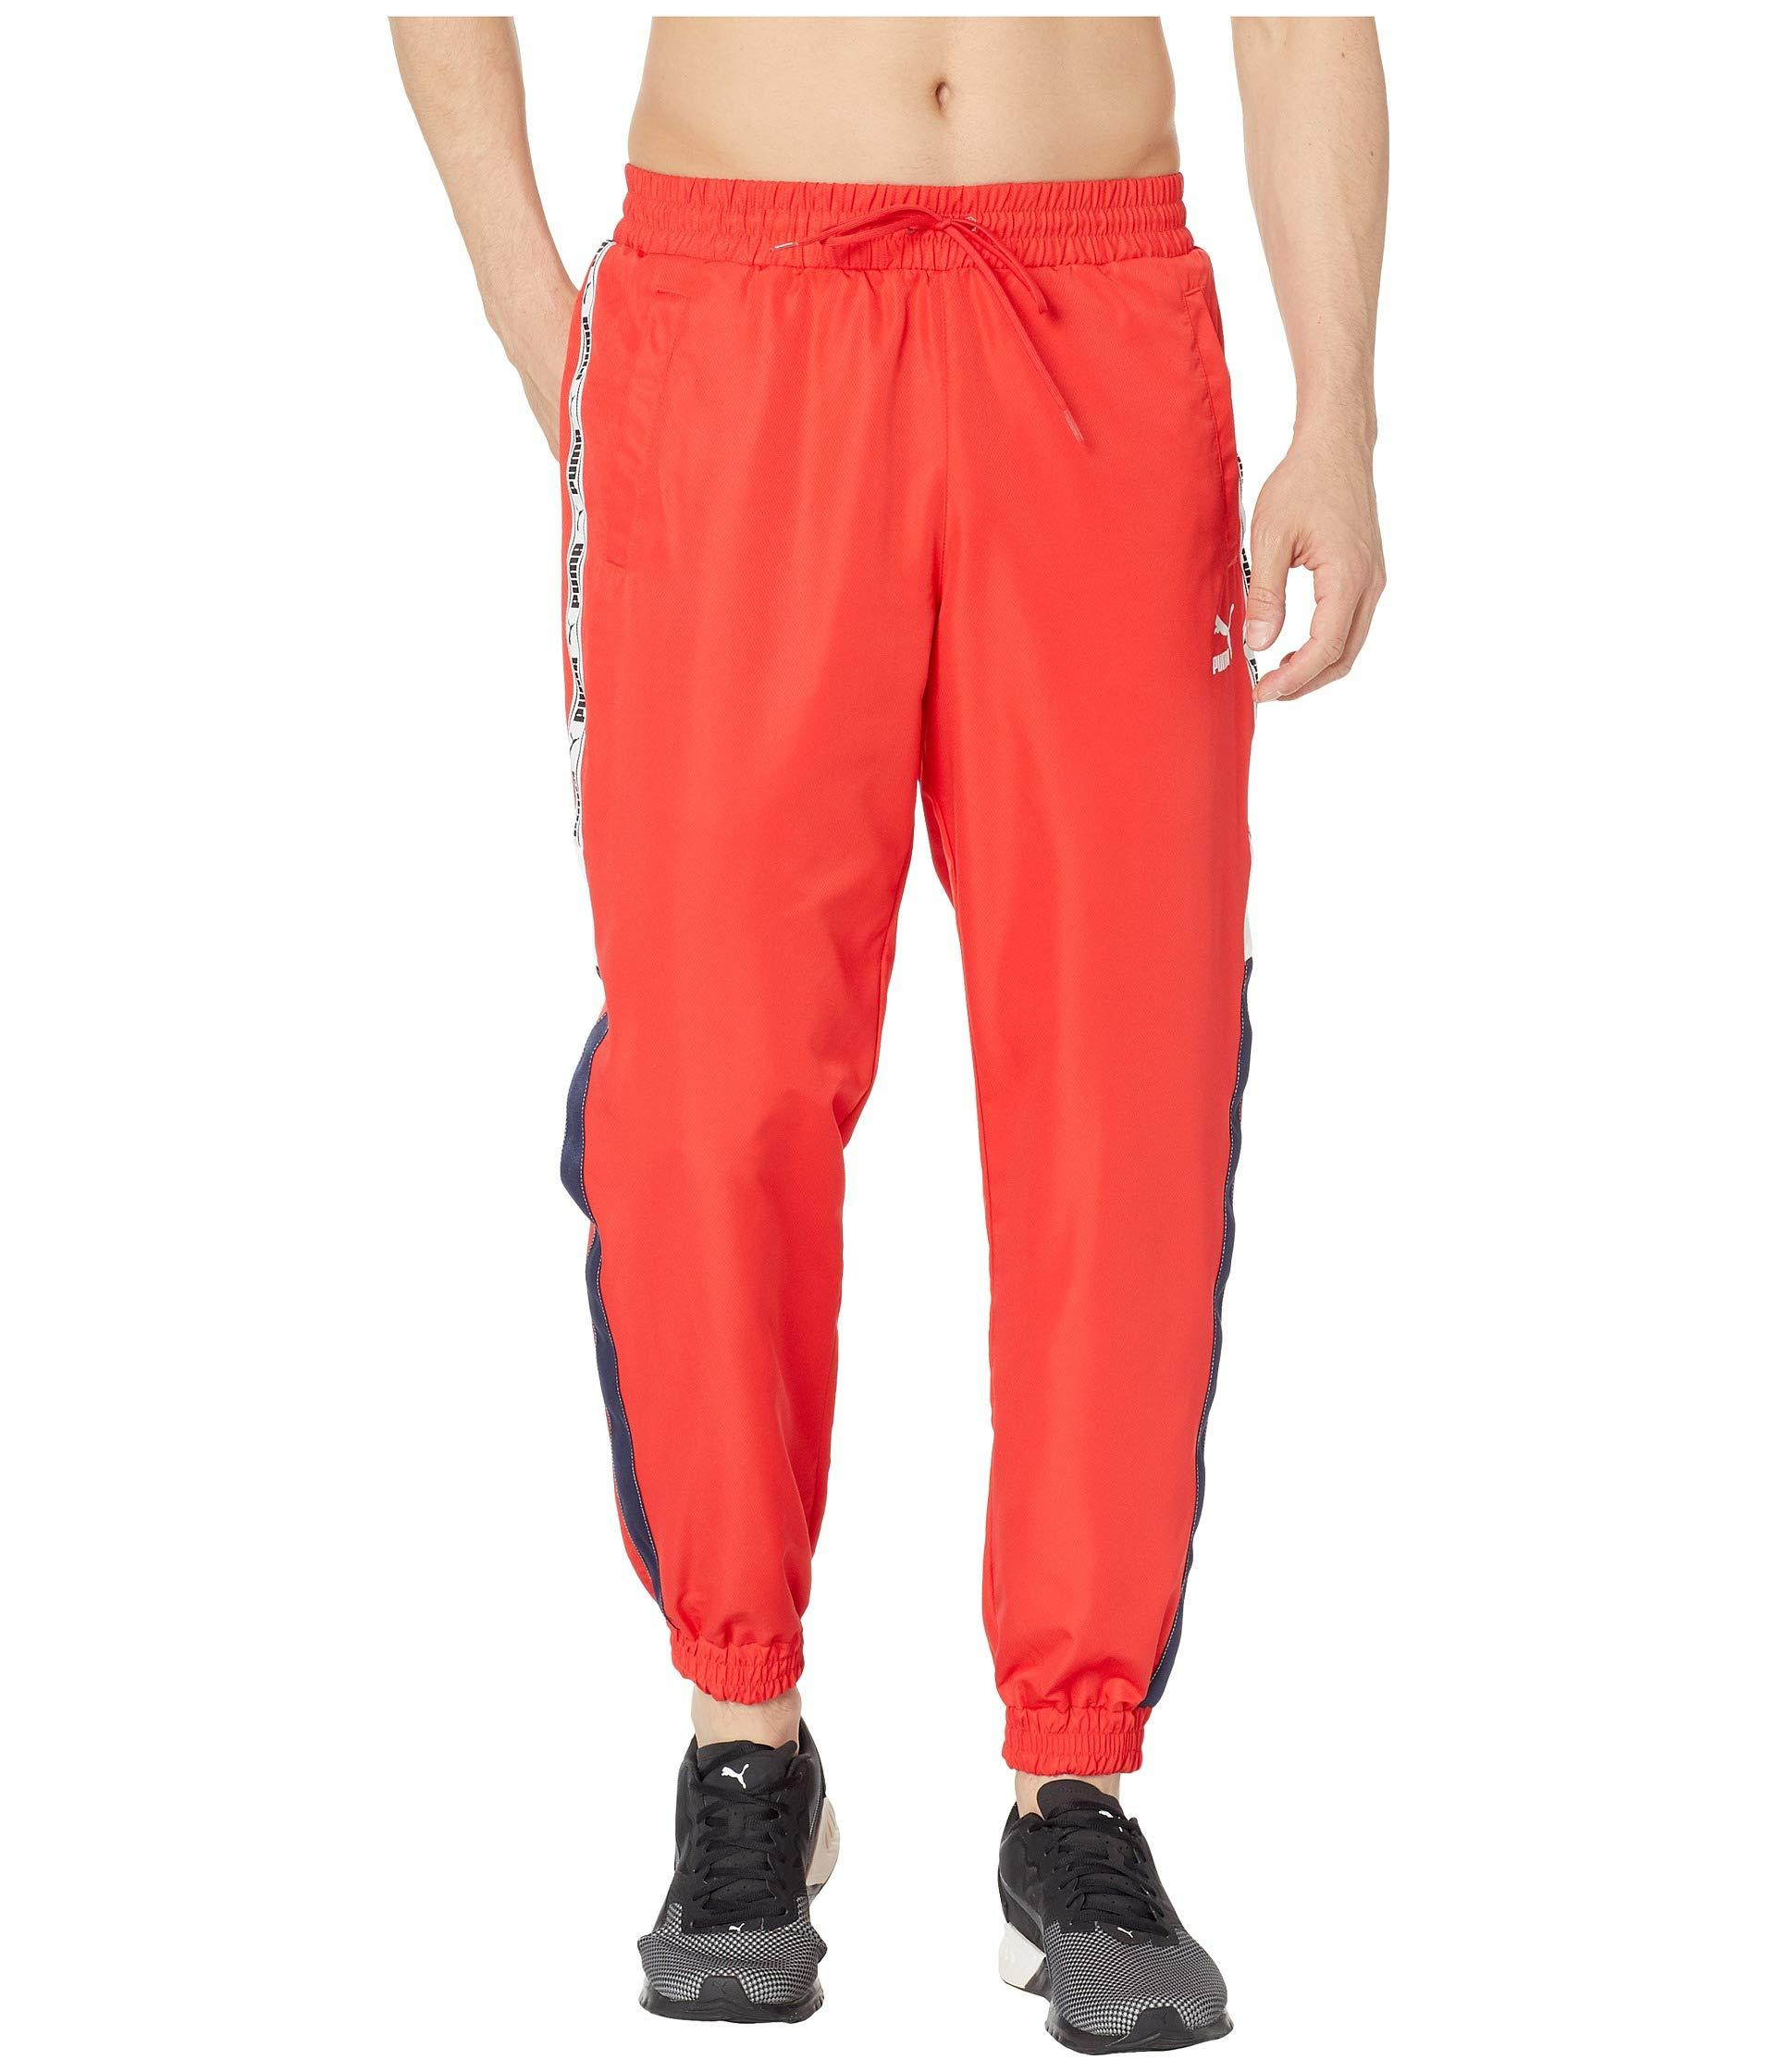 4706c916bb56 Lyst - PUMA Xtg Woven Pants in Red for Men